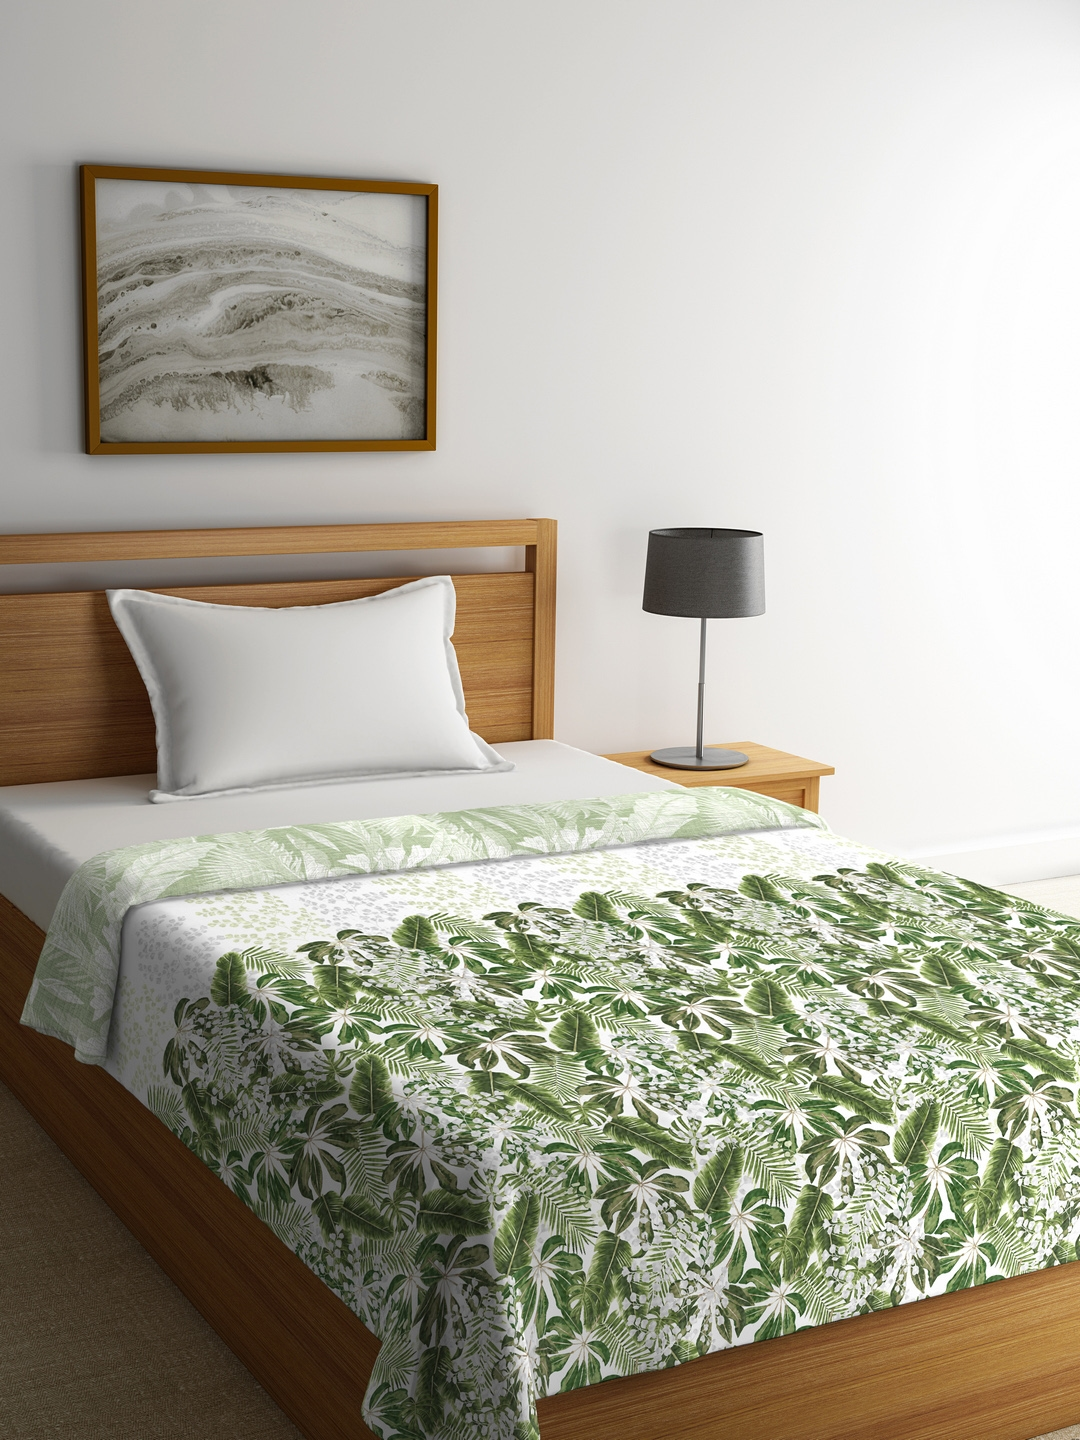 Buy Portico New York Off White Green Floral Ac Room 120 Gsm Single Bed Comforter Blankets Quilts And Dohars For Unisex 7780935 Myntra